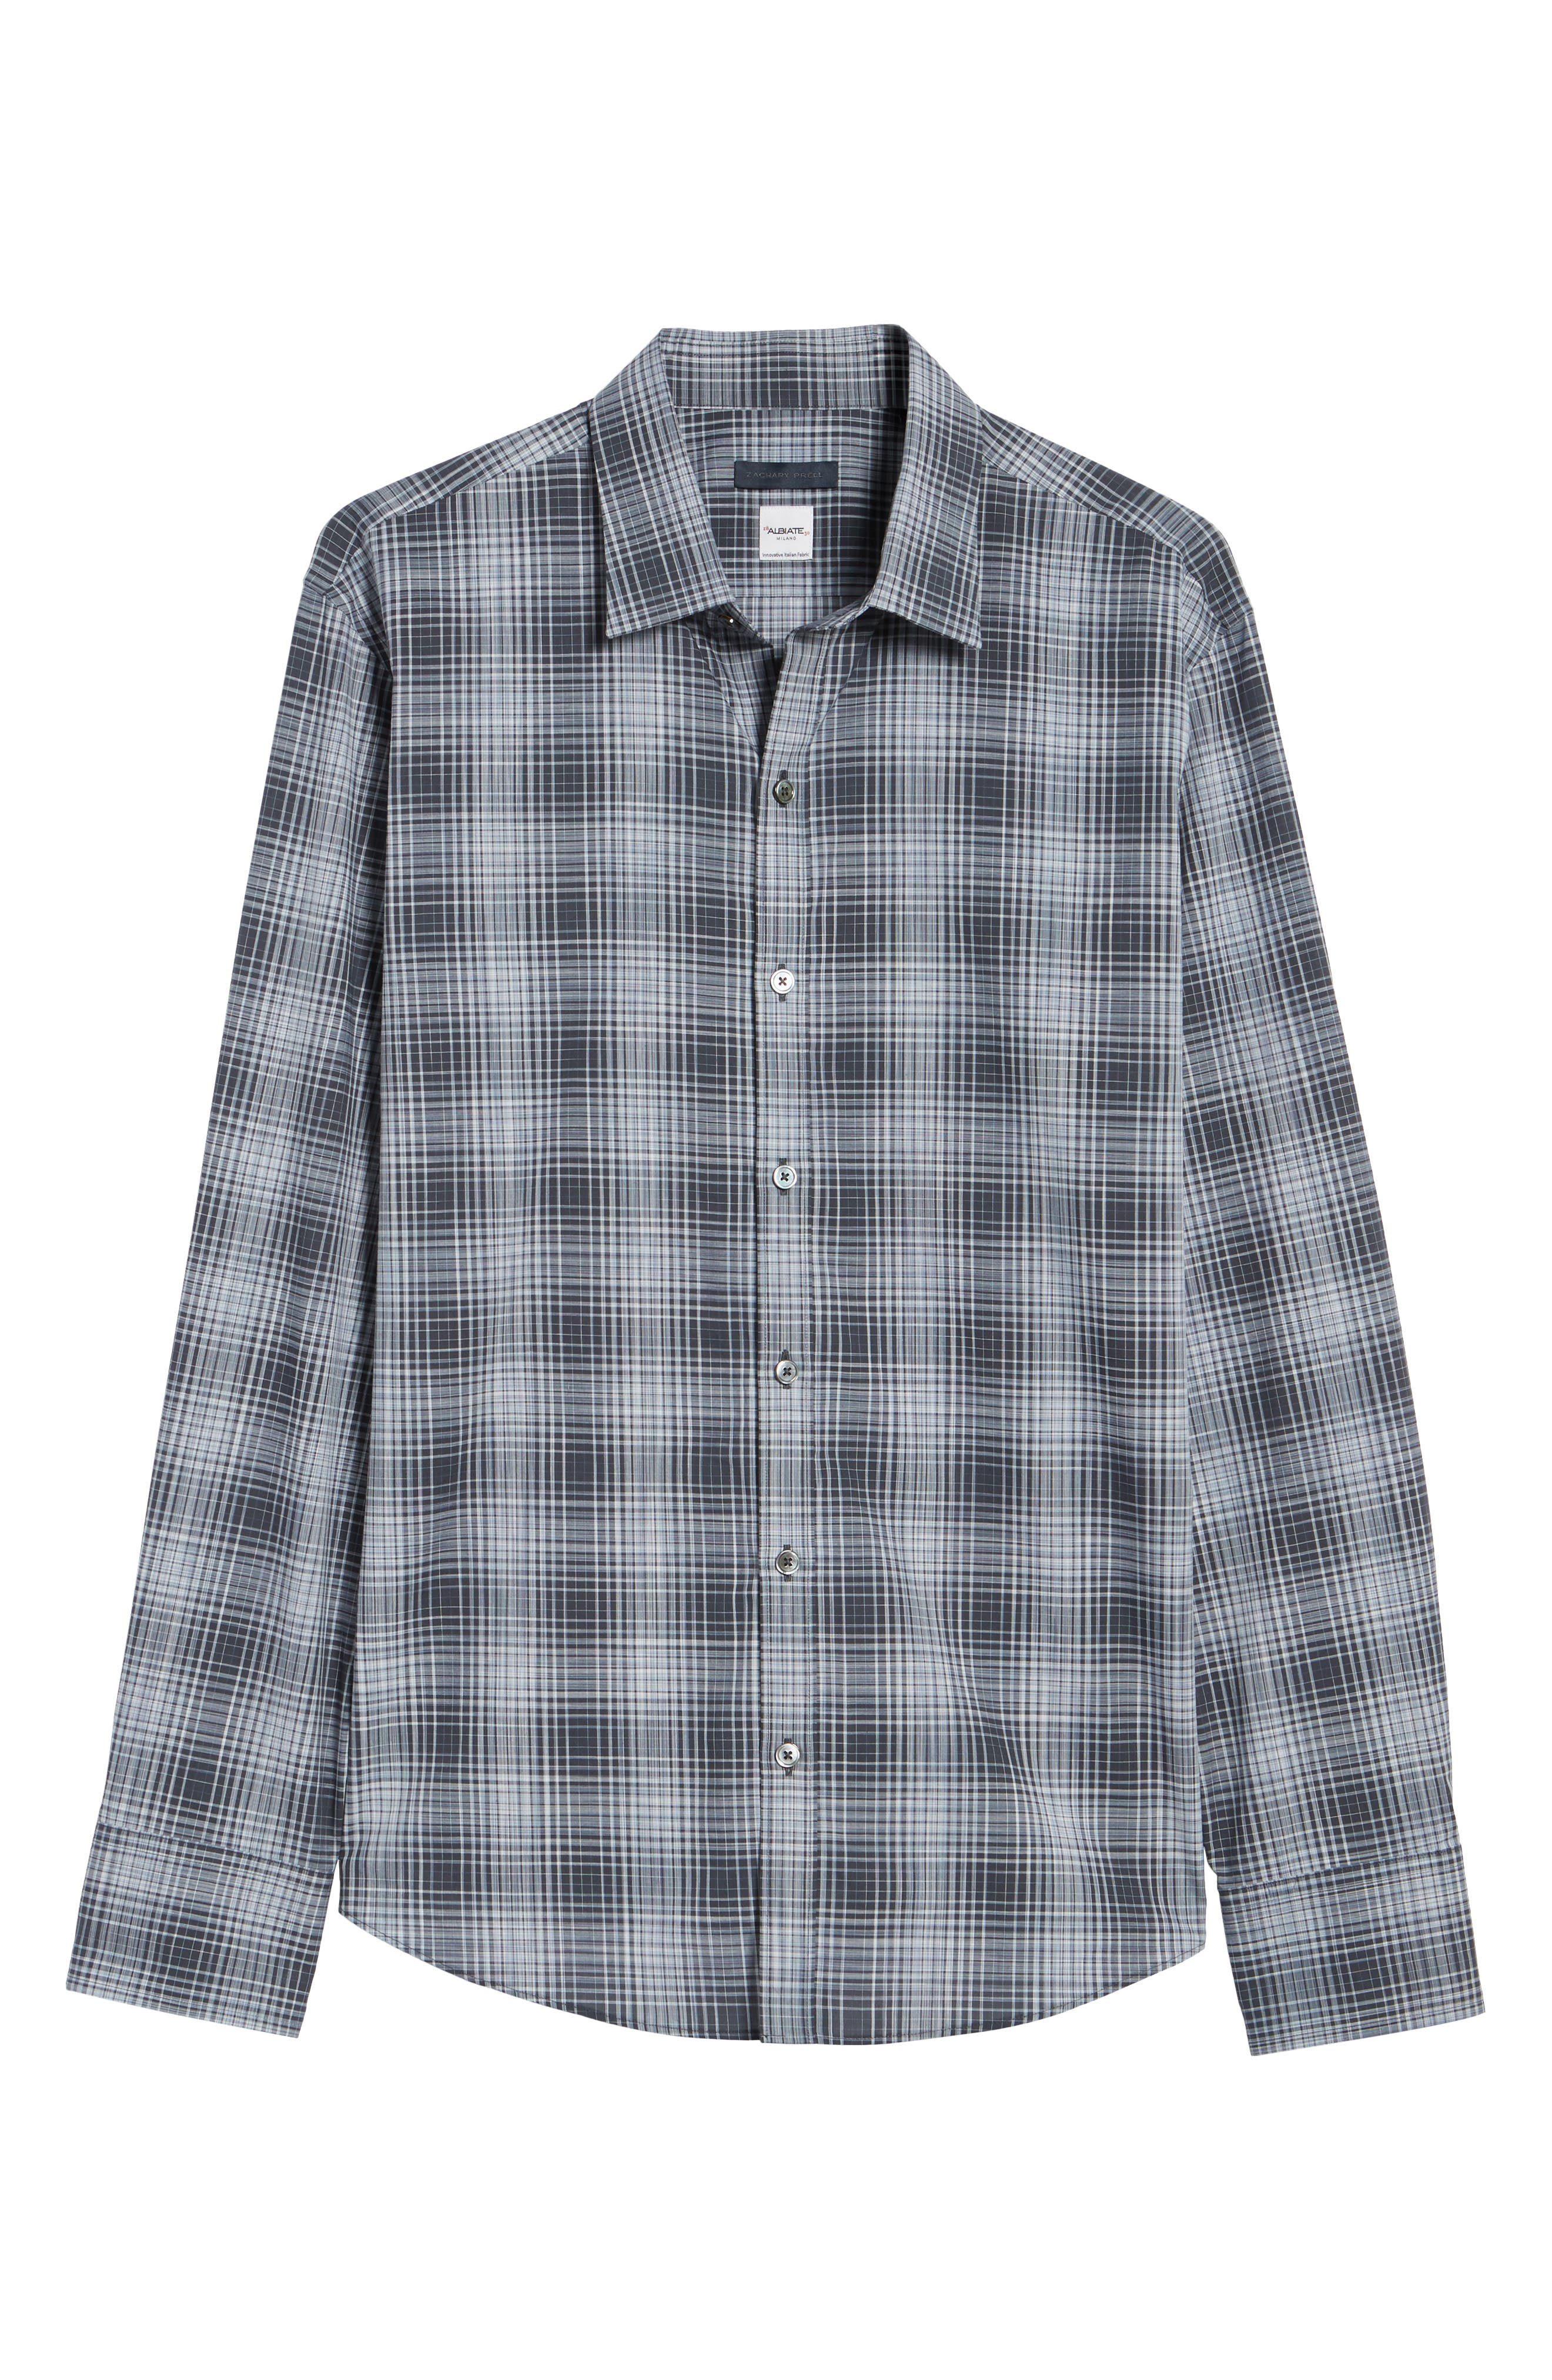 Zander Check Sport Shirt,                             Alternate thumbnail 6, color,                             021